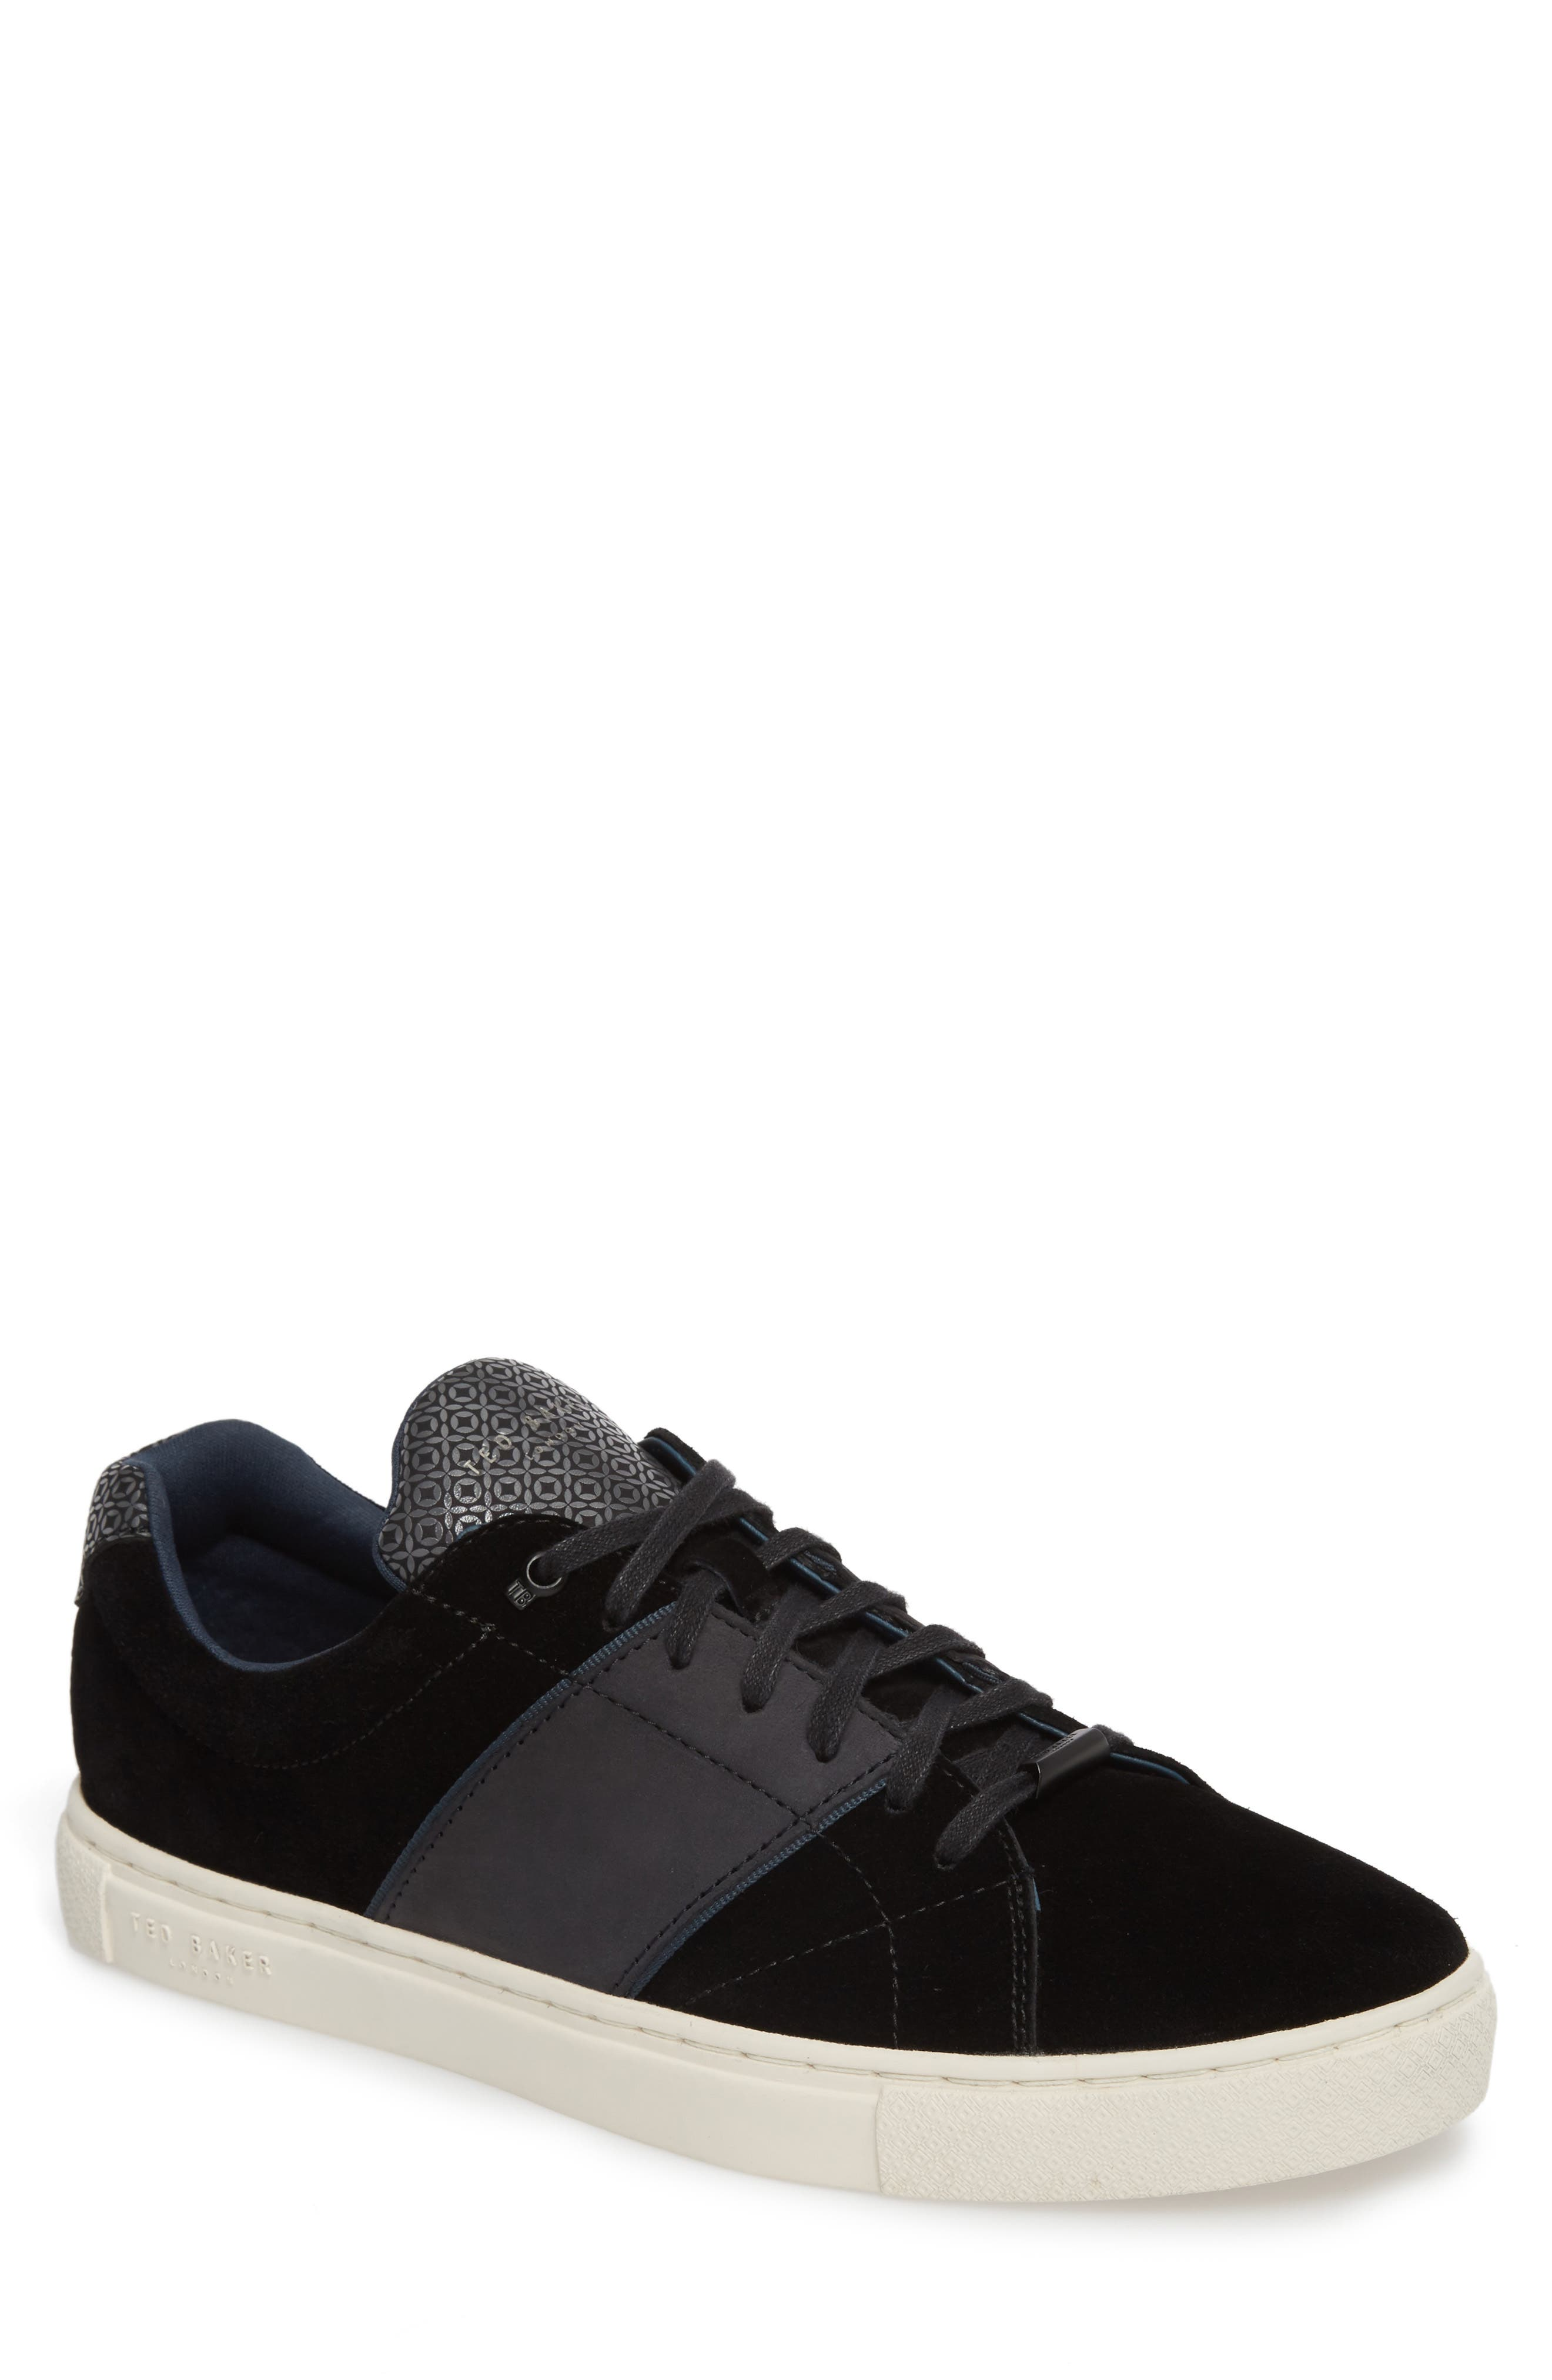 Dannez Low Top Sneaker,                             Main thumbnail 1, color,                             001